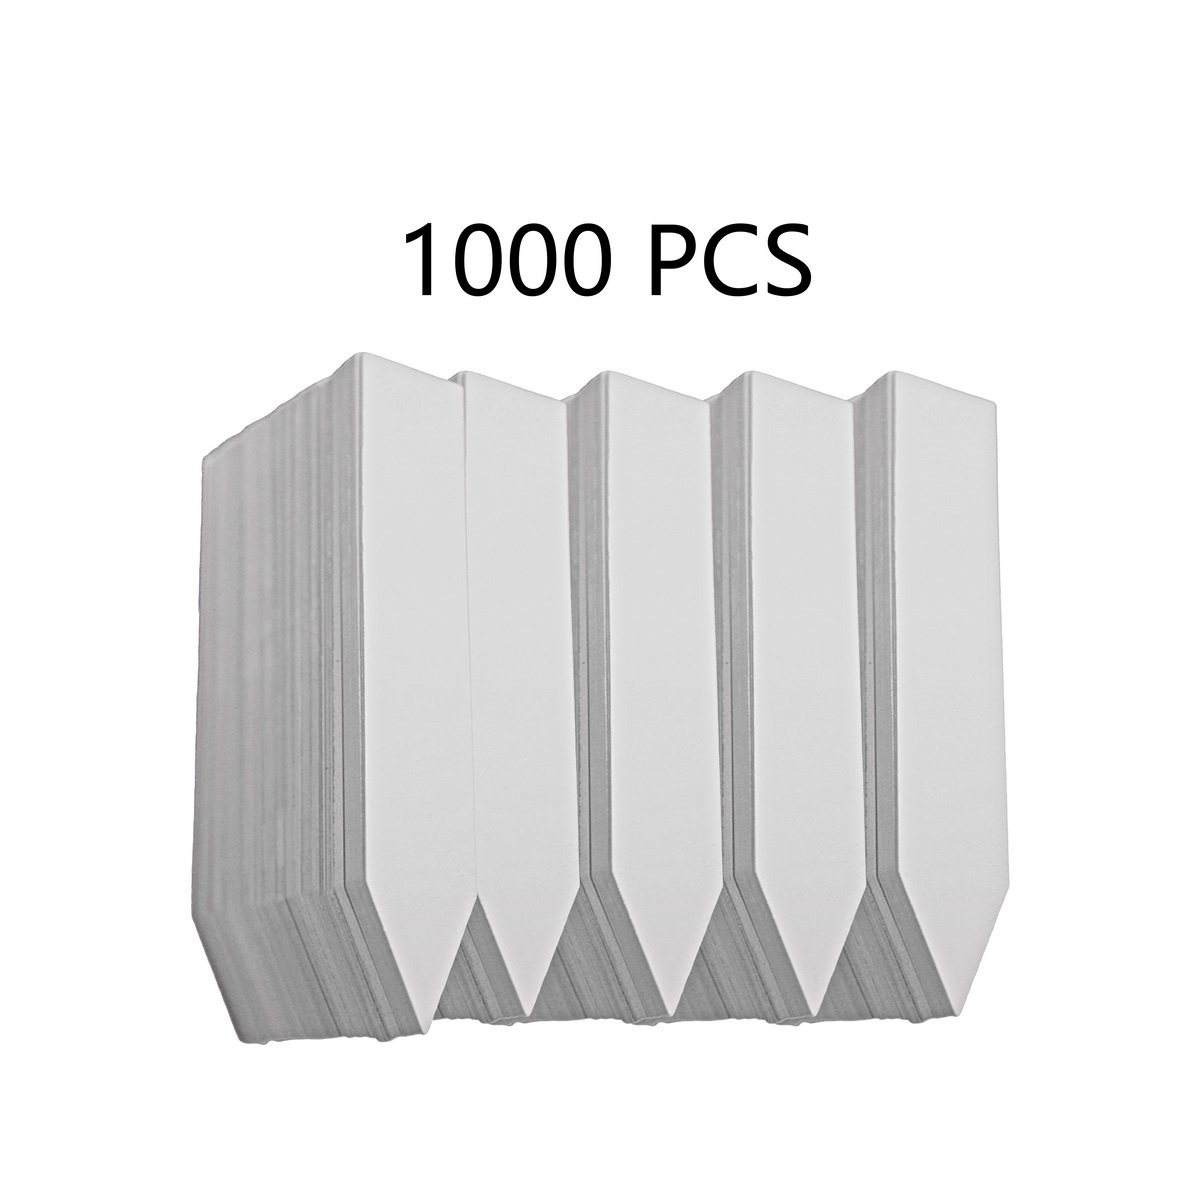 YIKUSH 1000 PCS PVC Plastic Plant Labels for Nursery Pots,4 inch,White by YIKUSH